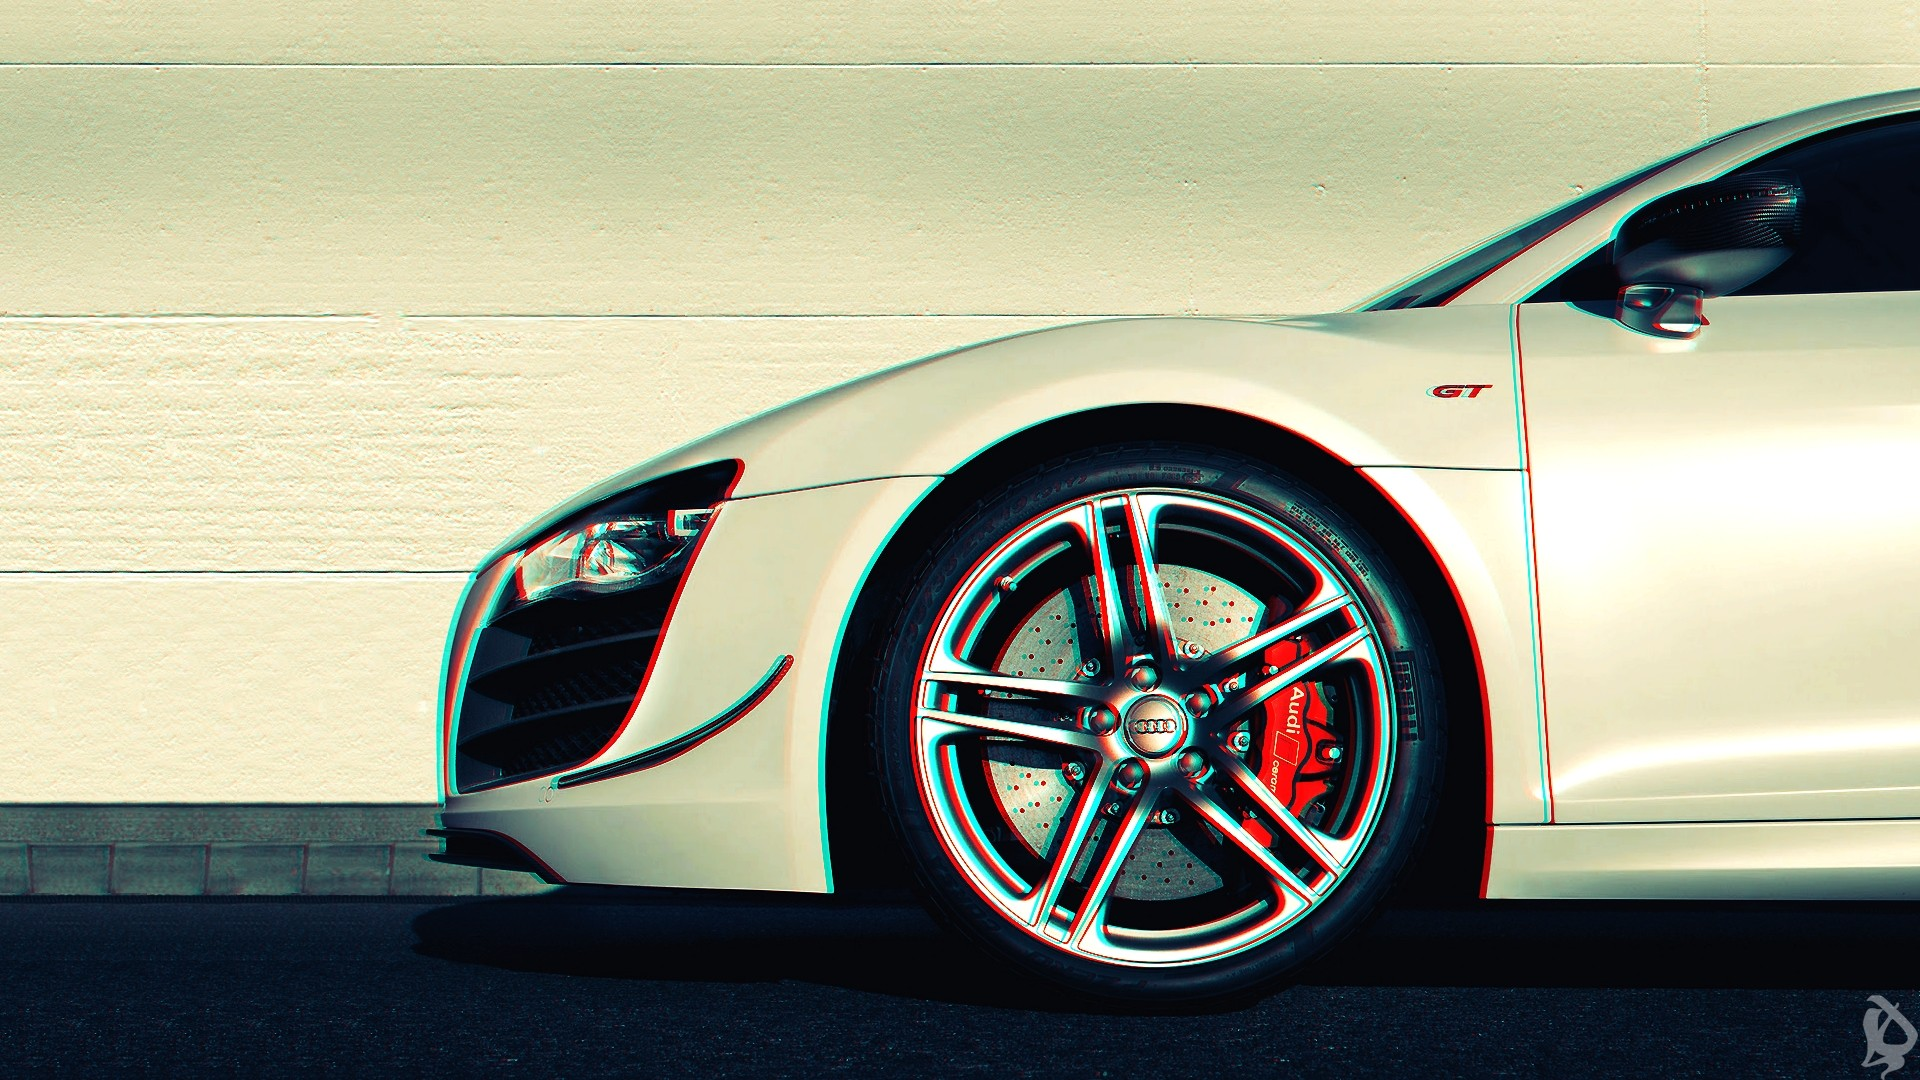 1920x1080 Preview wallpaper audi r8, anaglyph, 3d, car